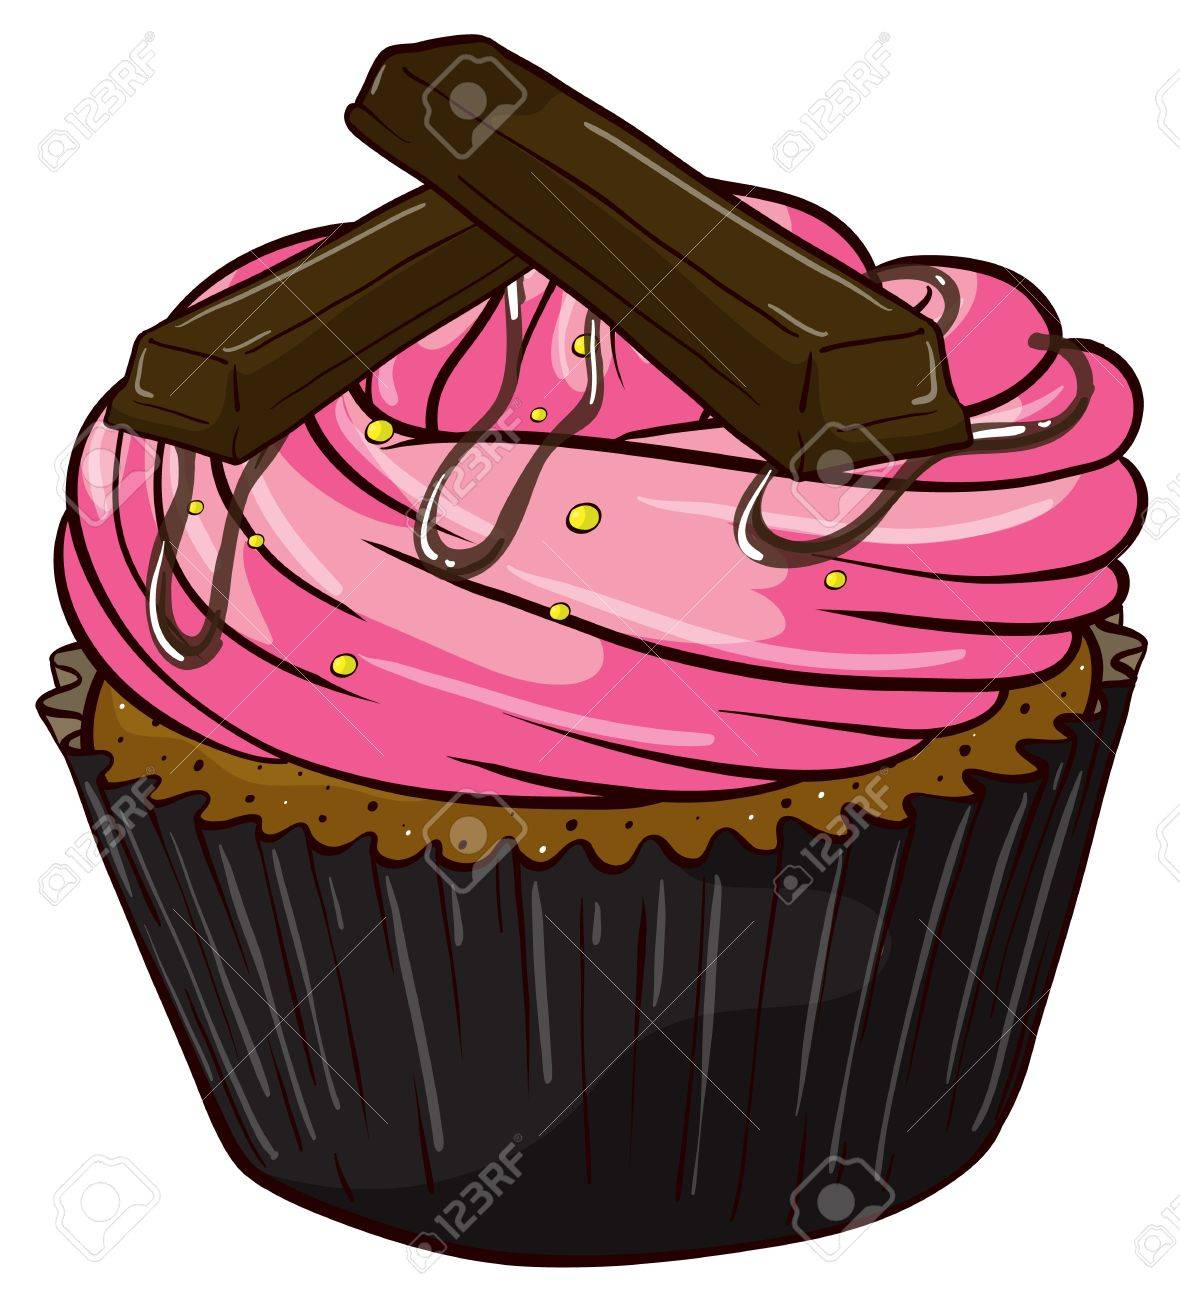 Illustration of an isolated cupcake Stock Vector - 16105414